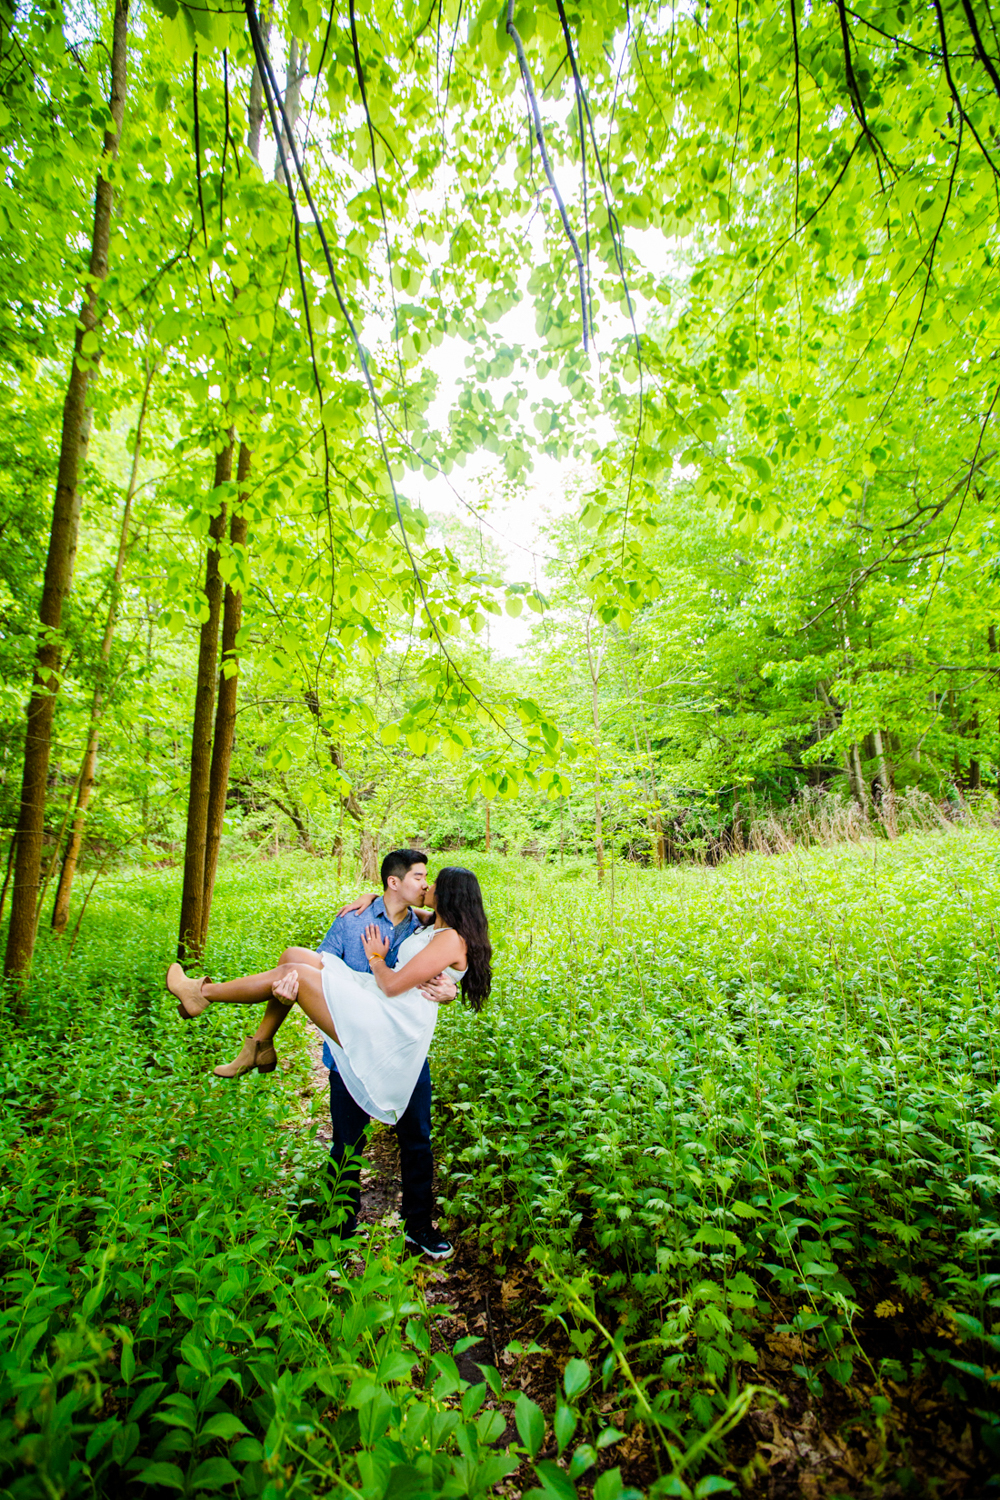 Lee-Esession-115.jpg